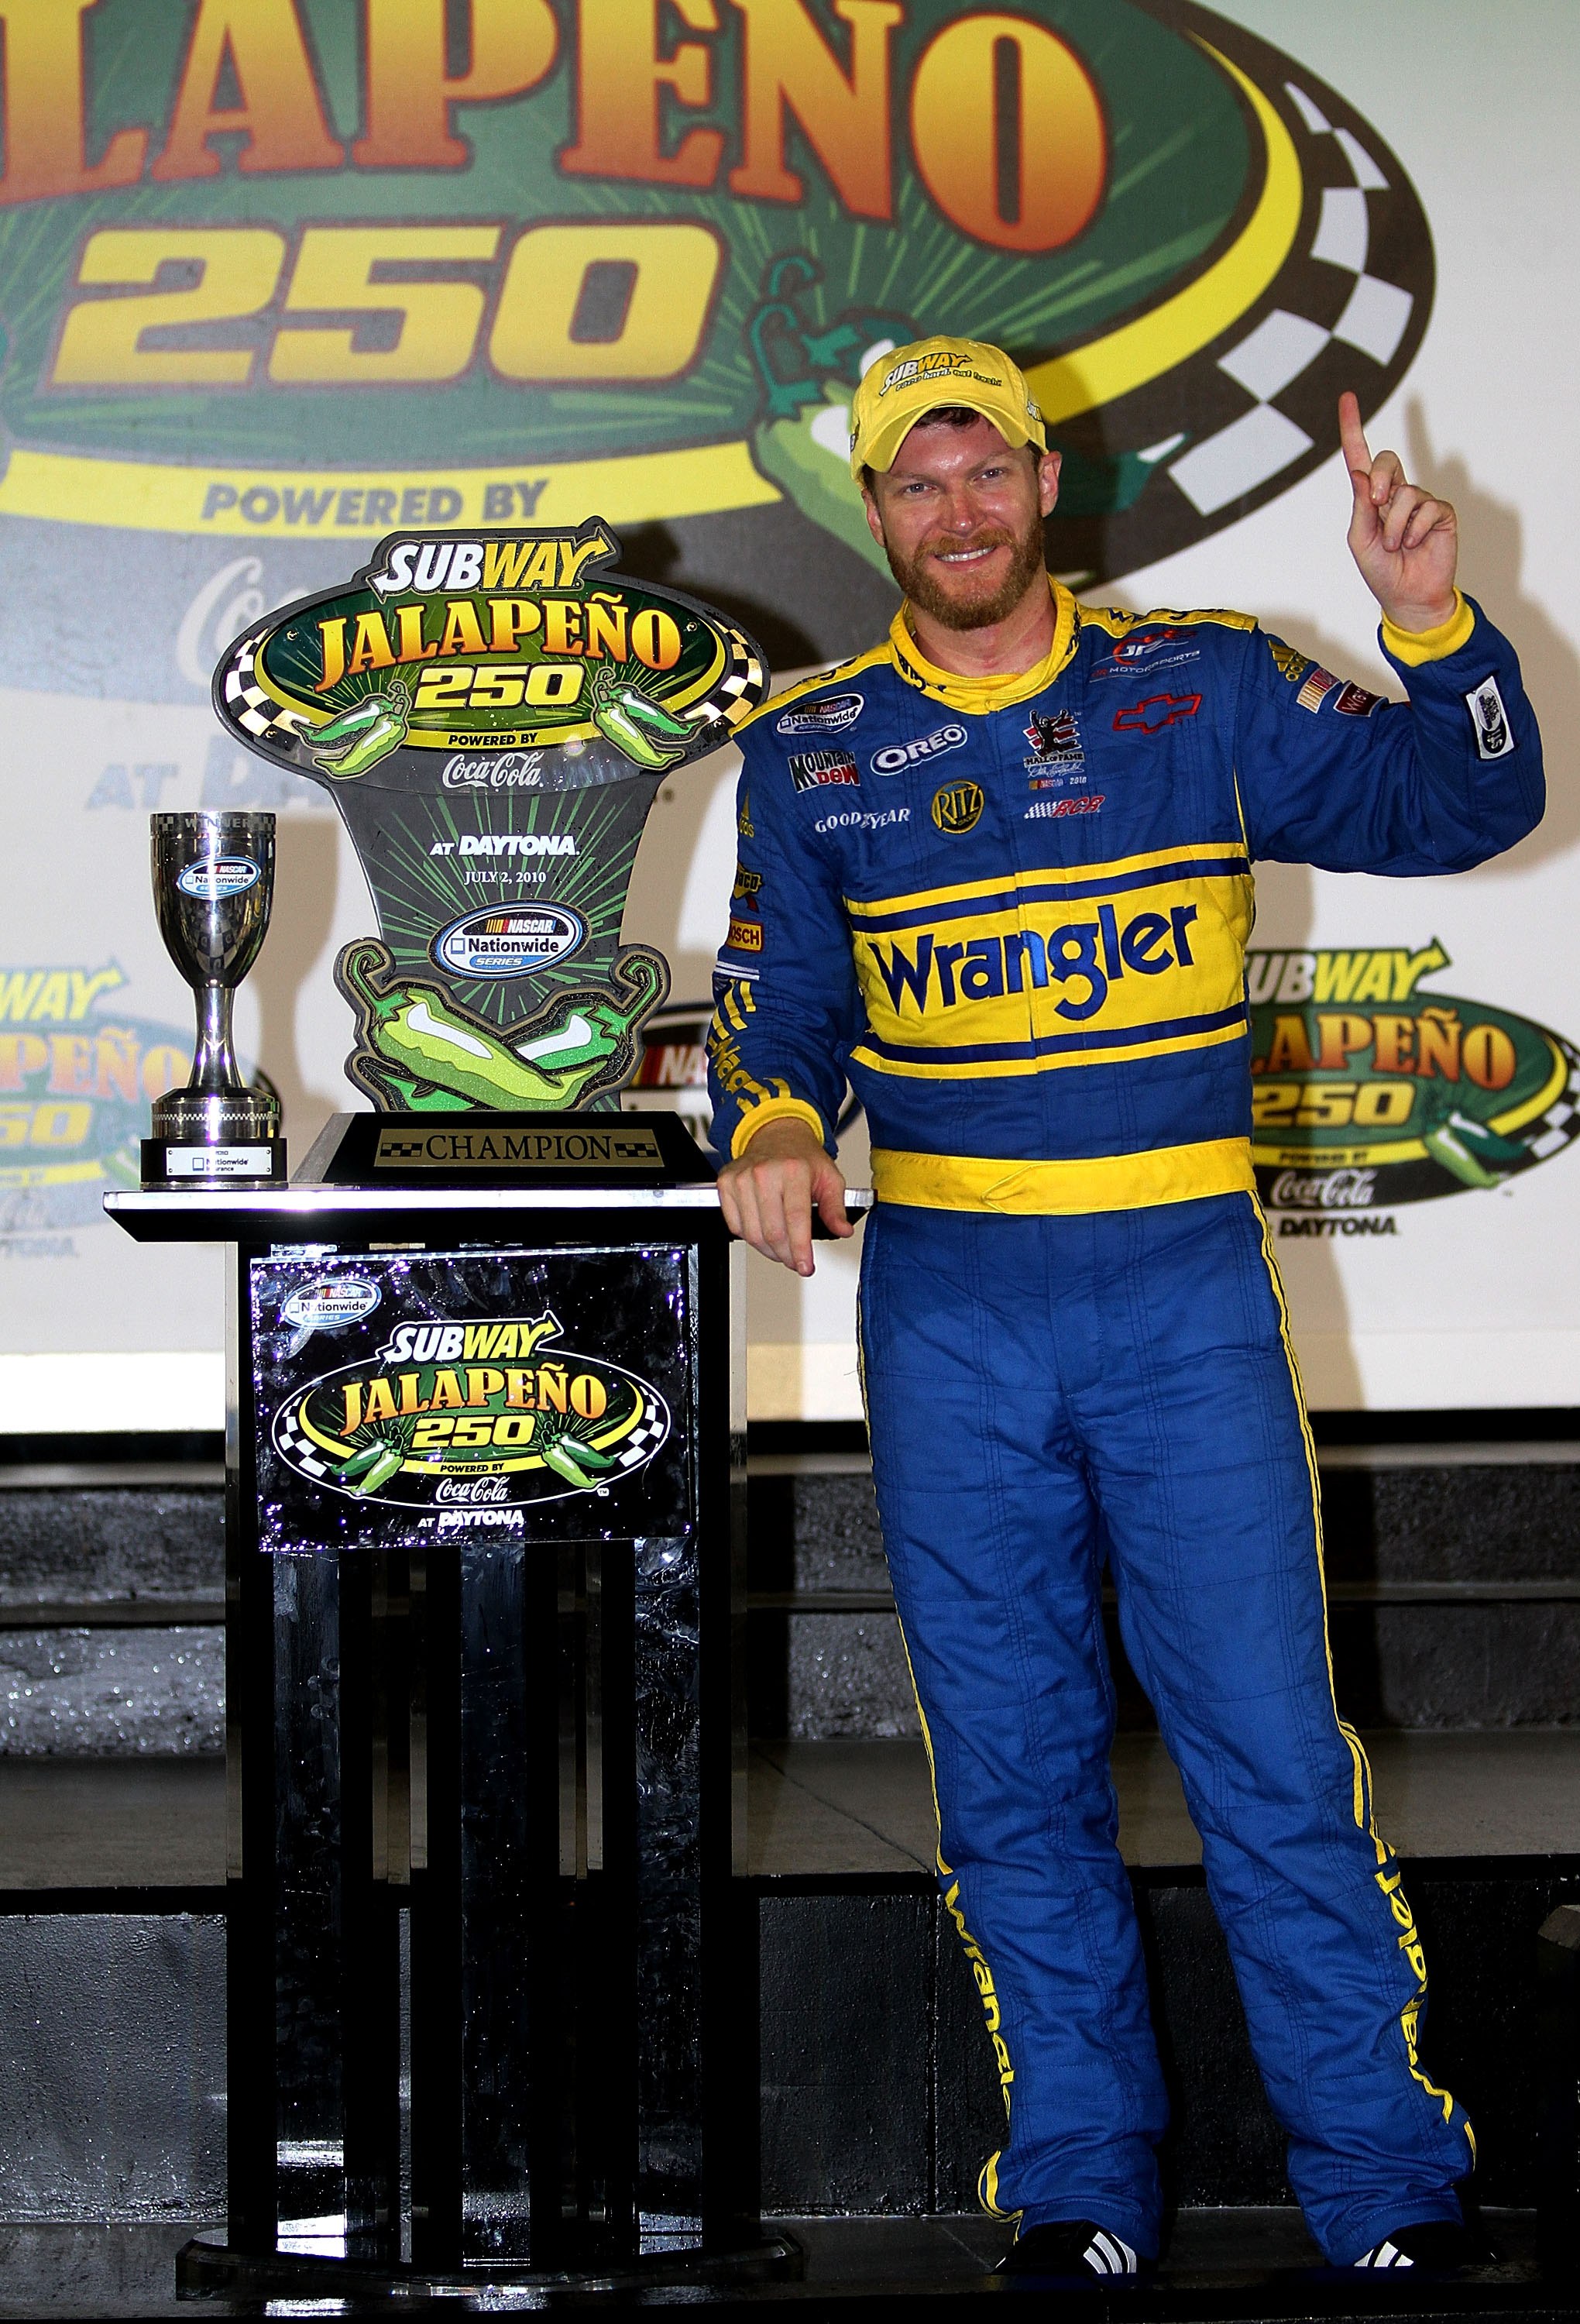 DAYTONA BEACH, FL - JULY 02:  Dale Earnhardt Jr., driver of the #3 Wrangler Chevrolet, celebrates in victory lane after winning the NASCAR Nationwide Series Subway Jalapeno 250 at Daytona International Speedway on July 2, 2010 in Daytona Beach, Florida.